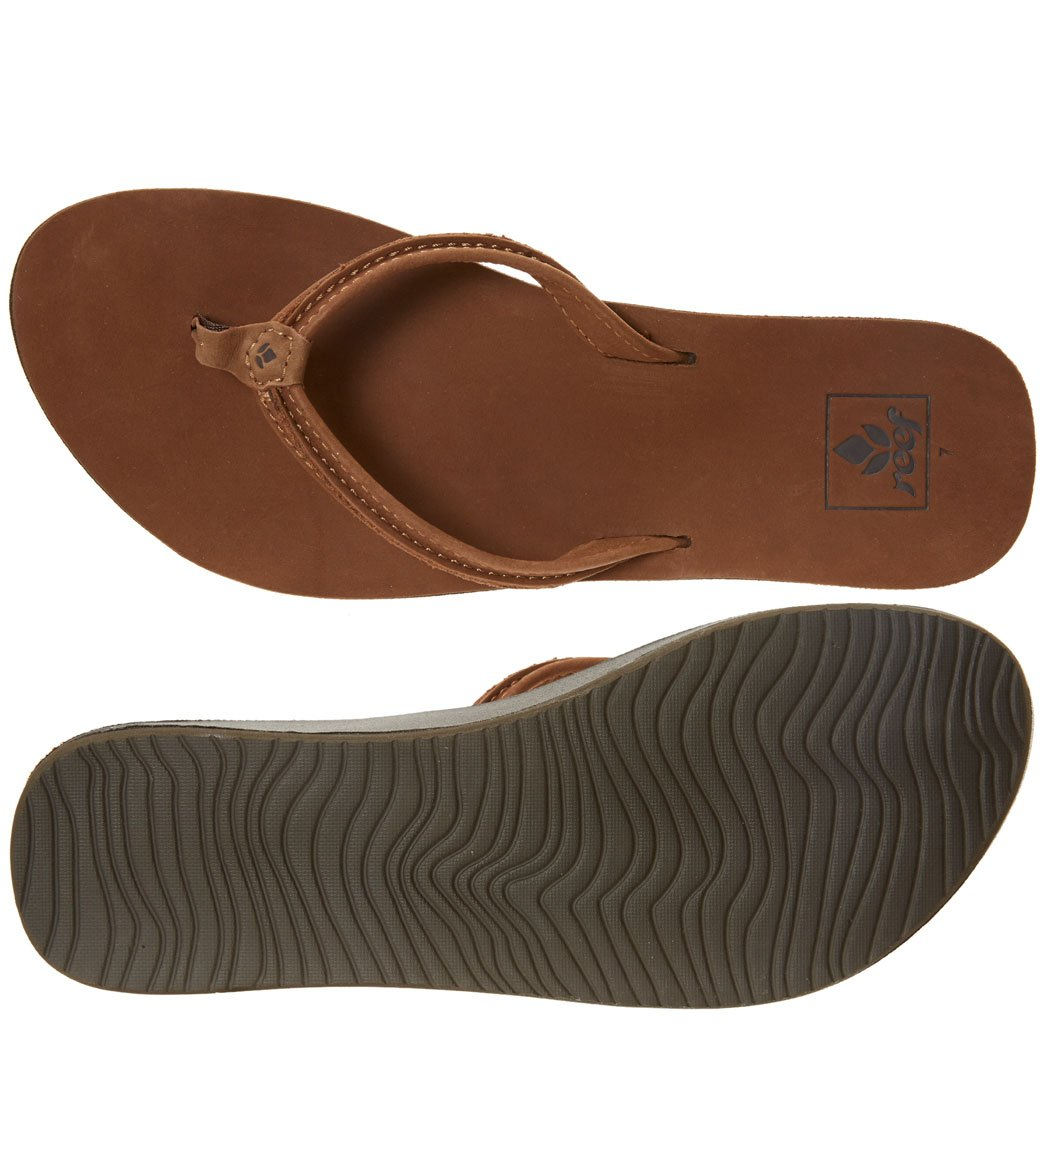 29d7ae67370e Reef Women s Cushion Bounce Swing Flip Flop at SwimOutlet.com - Free ...